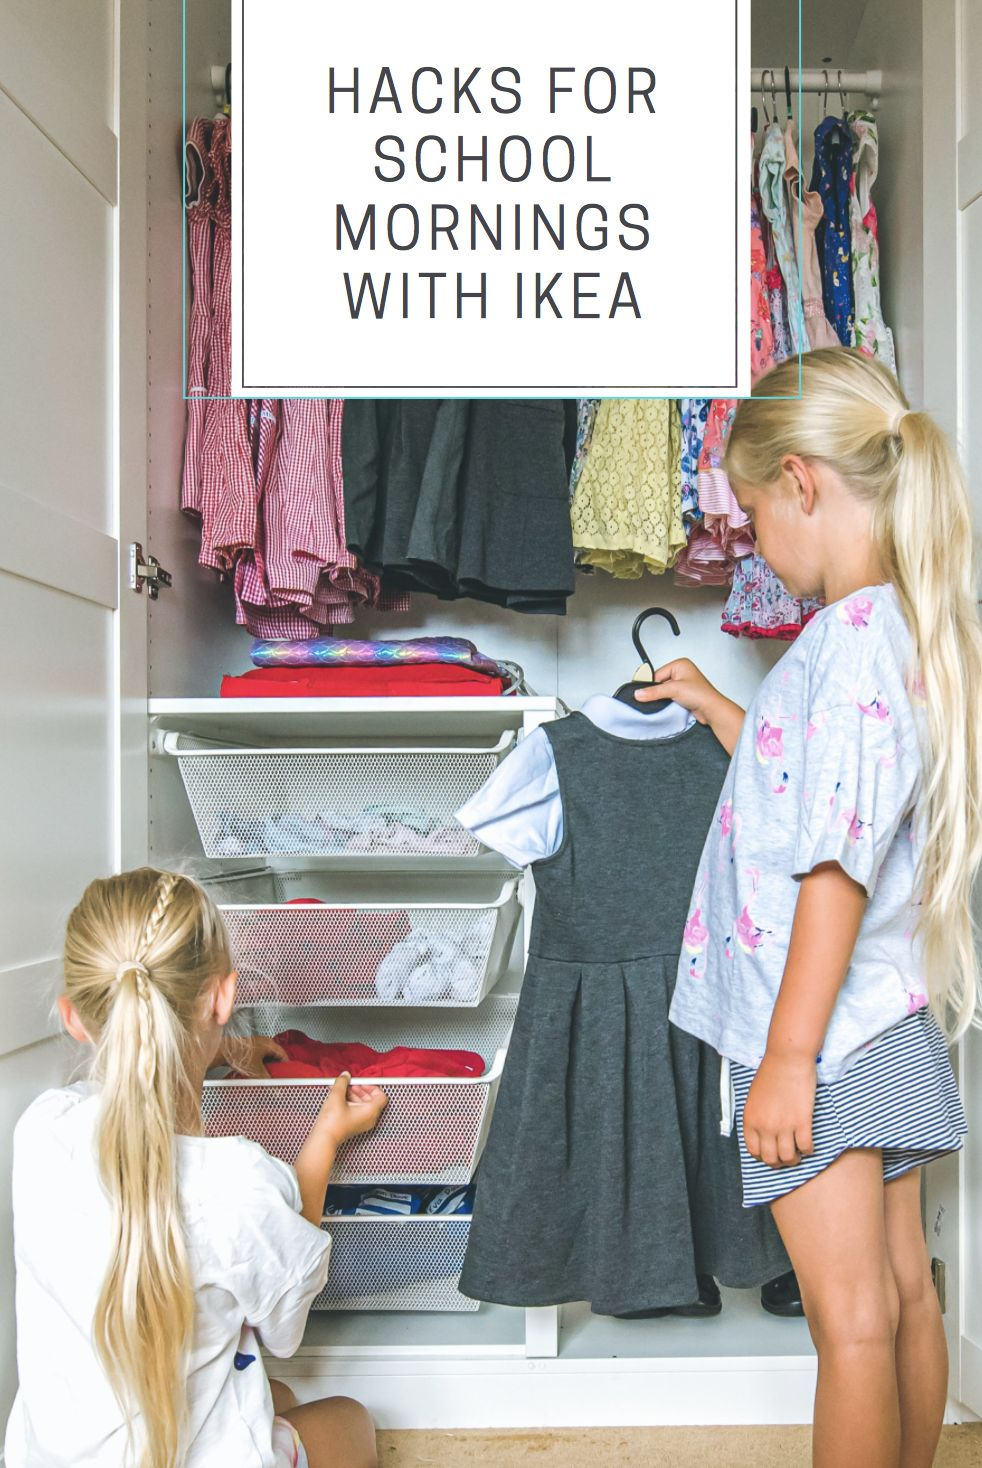 Hacks for school mornings with Ikea